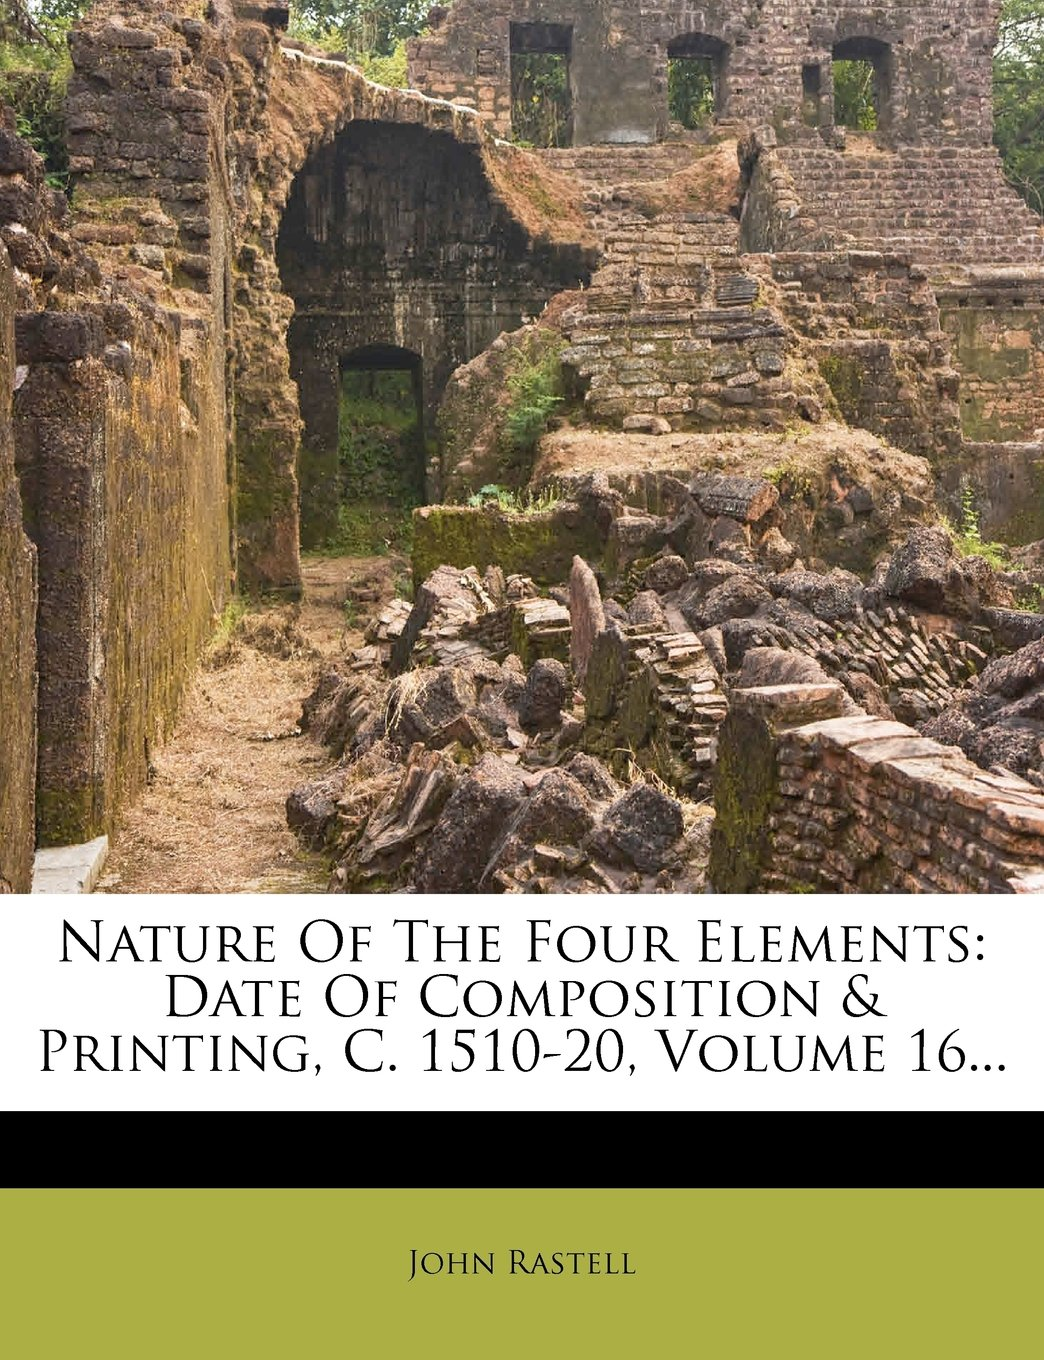 Read Online Nature Of The Four Elements: Date Of Composition & Printing, C. 1510-20, Volume 16... PDF